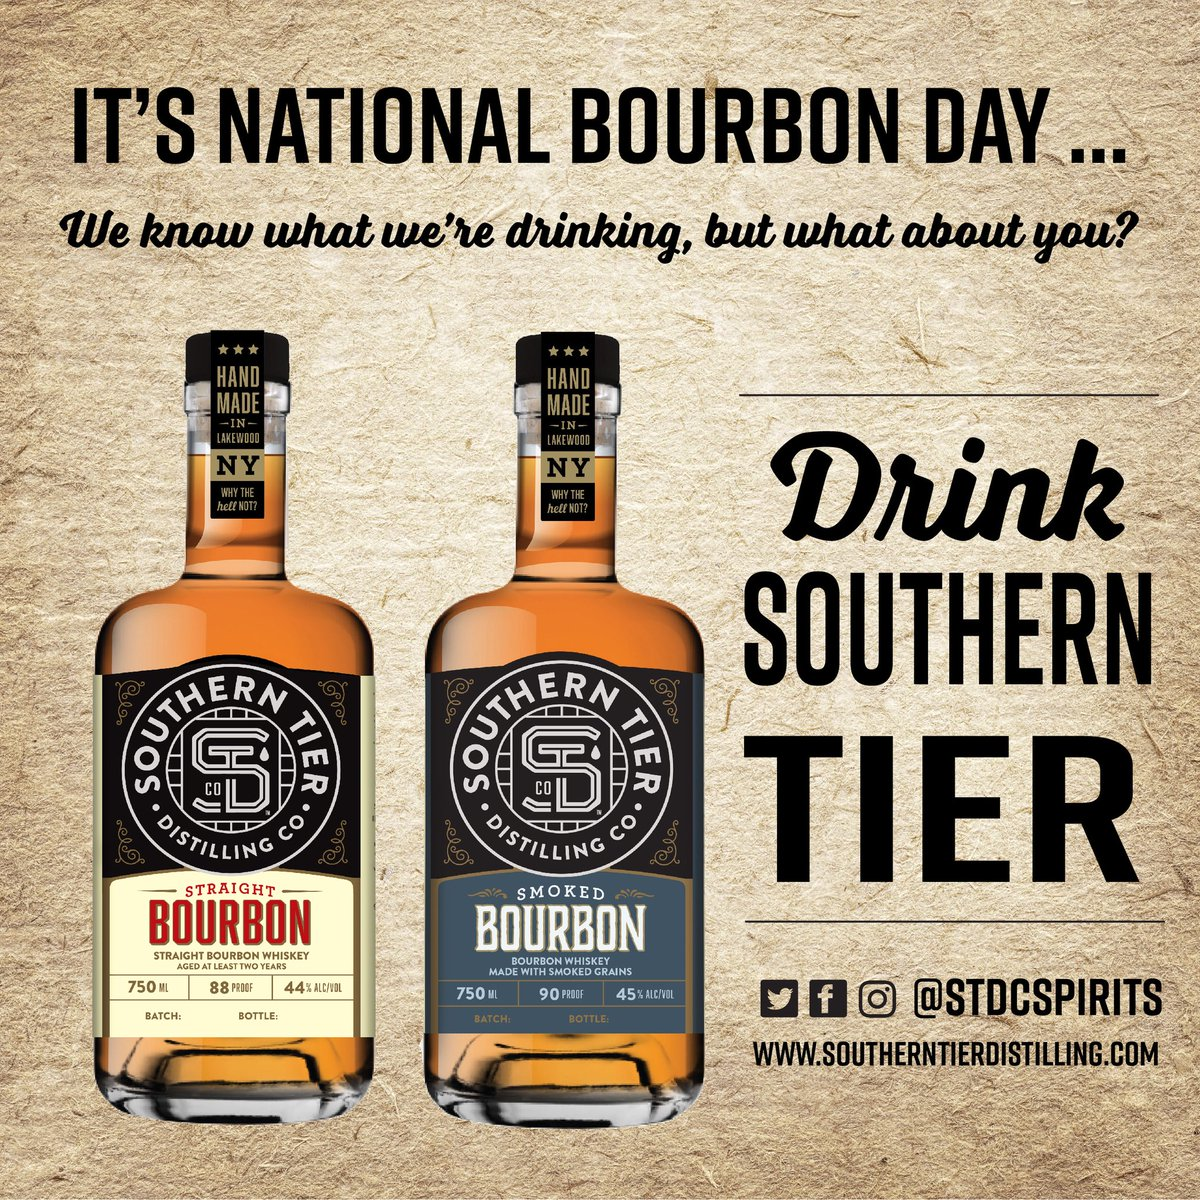 """Who's ready? <a target=""""_blank"""" rel=""""nofollow"""" href=""""https://twitter.com/#!/search?q=%23nationalbourbonday"""" class=""""hashtag"""">#<strong>nationalbourbonday</strong></a> <a target=""""_blank"""" rel=""""nofollow"""" href=""""https://twitter.com/#!/search?q=%23straightbourbon"""" class=""""hashtag"""">#<strong>straightbourbon</strong></a> <a target=""""_blank"""" rel=""""nofollow"""" href=""""https://twitter.com/#!/search?q=%23smokedbourbon"""" class=""""hashtag"""">#<strong>smokedbourbon</strong></a> <a target=""""_blank"""" rel=""""nofollow"""" href=""""https://twitter.com/#!/search?q=%23stdc"""" class=""""hashtag"""">#<strong>stdc</strong></a> <a target=""""_blank"""" rel=""""nofollow"""" href=""""https://twitter.com/#!/search?q=%23whythehellnot"""" class=""""hashtag"""">#<strong>whythehellnot</strong></a> <a target=""""_blank"""" rel=""""nofollow"""" href=""""https://t.co/DAfCL7wvlN"""">https://t.co/DAfCL7wvlN</a>"""